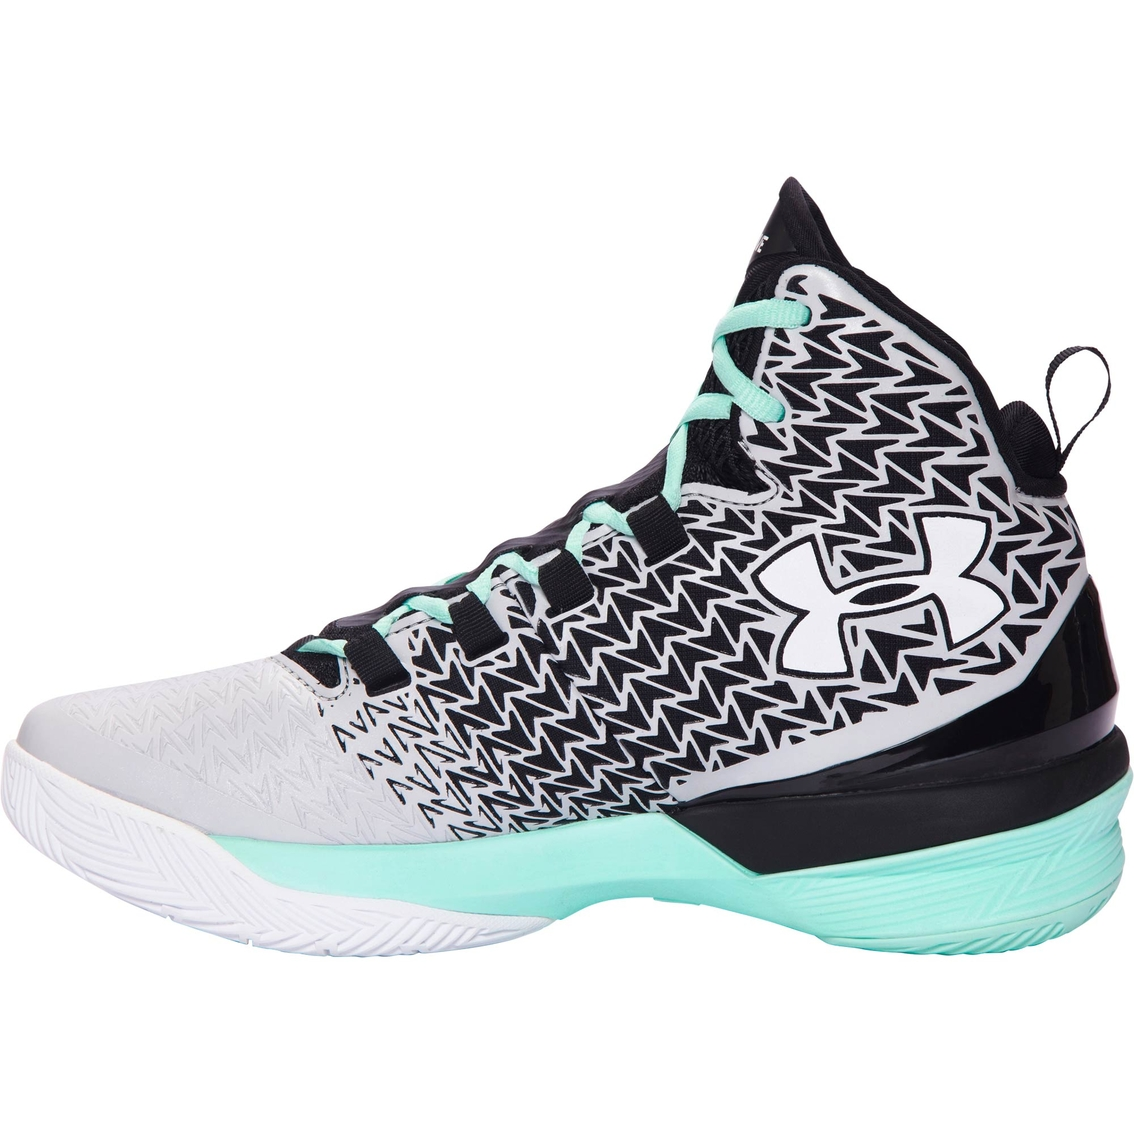 armour s clutchfit drive 3 basketball shoes